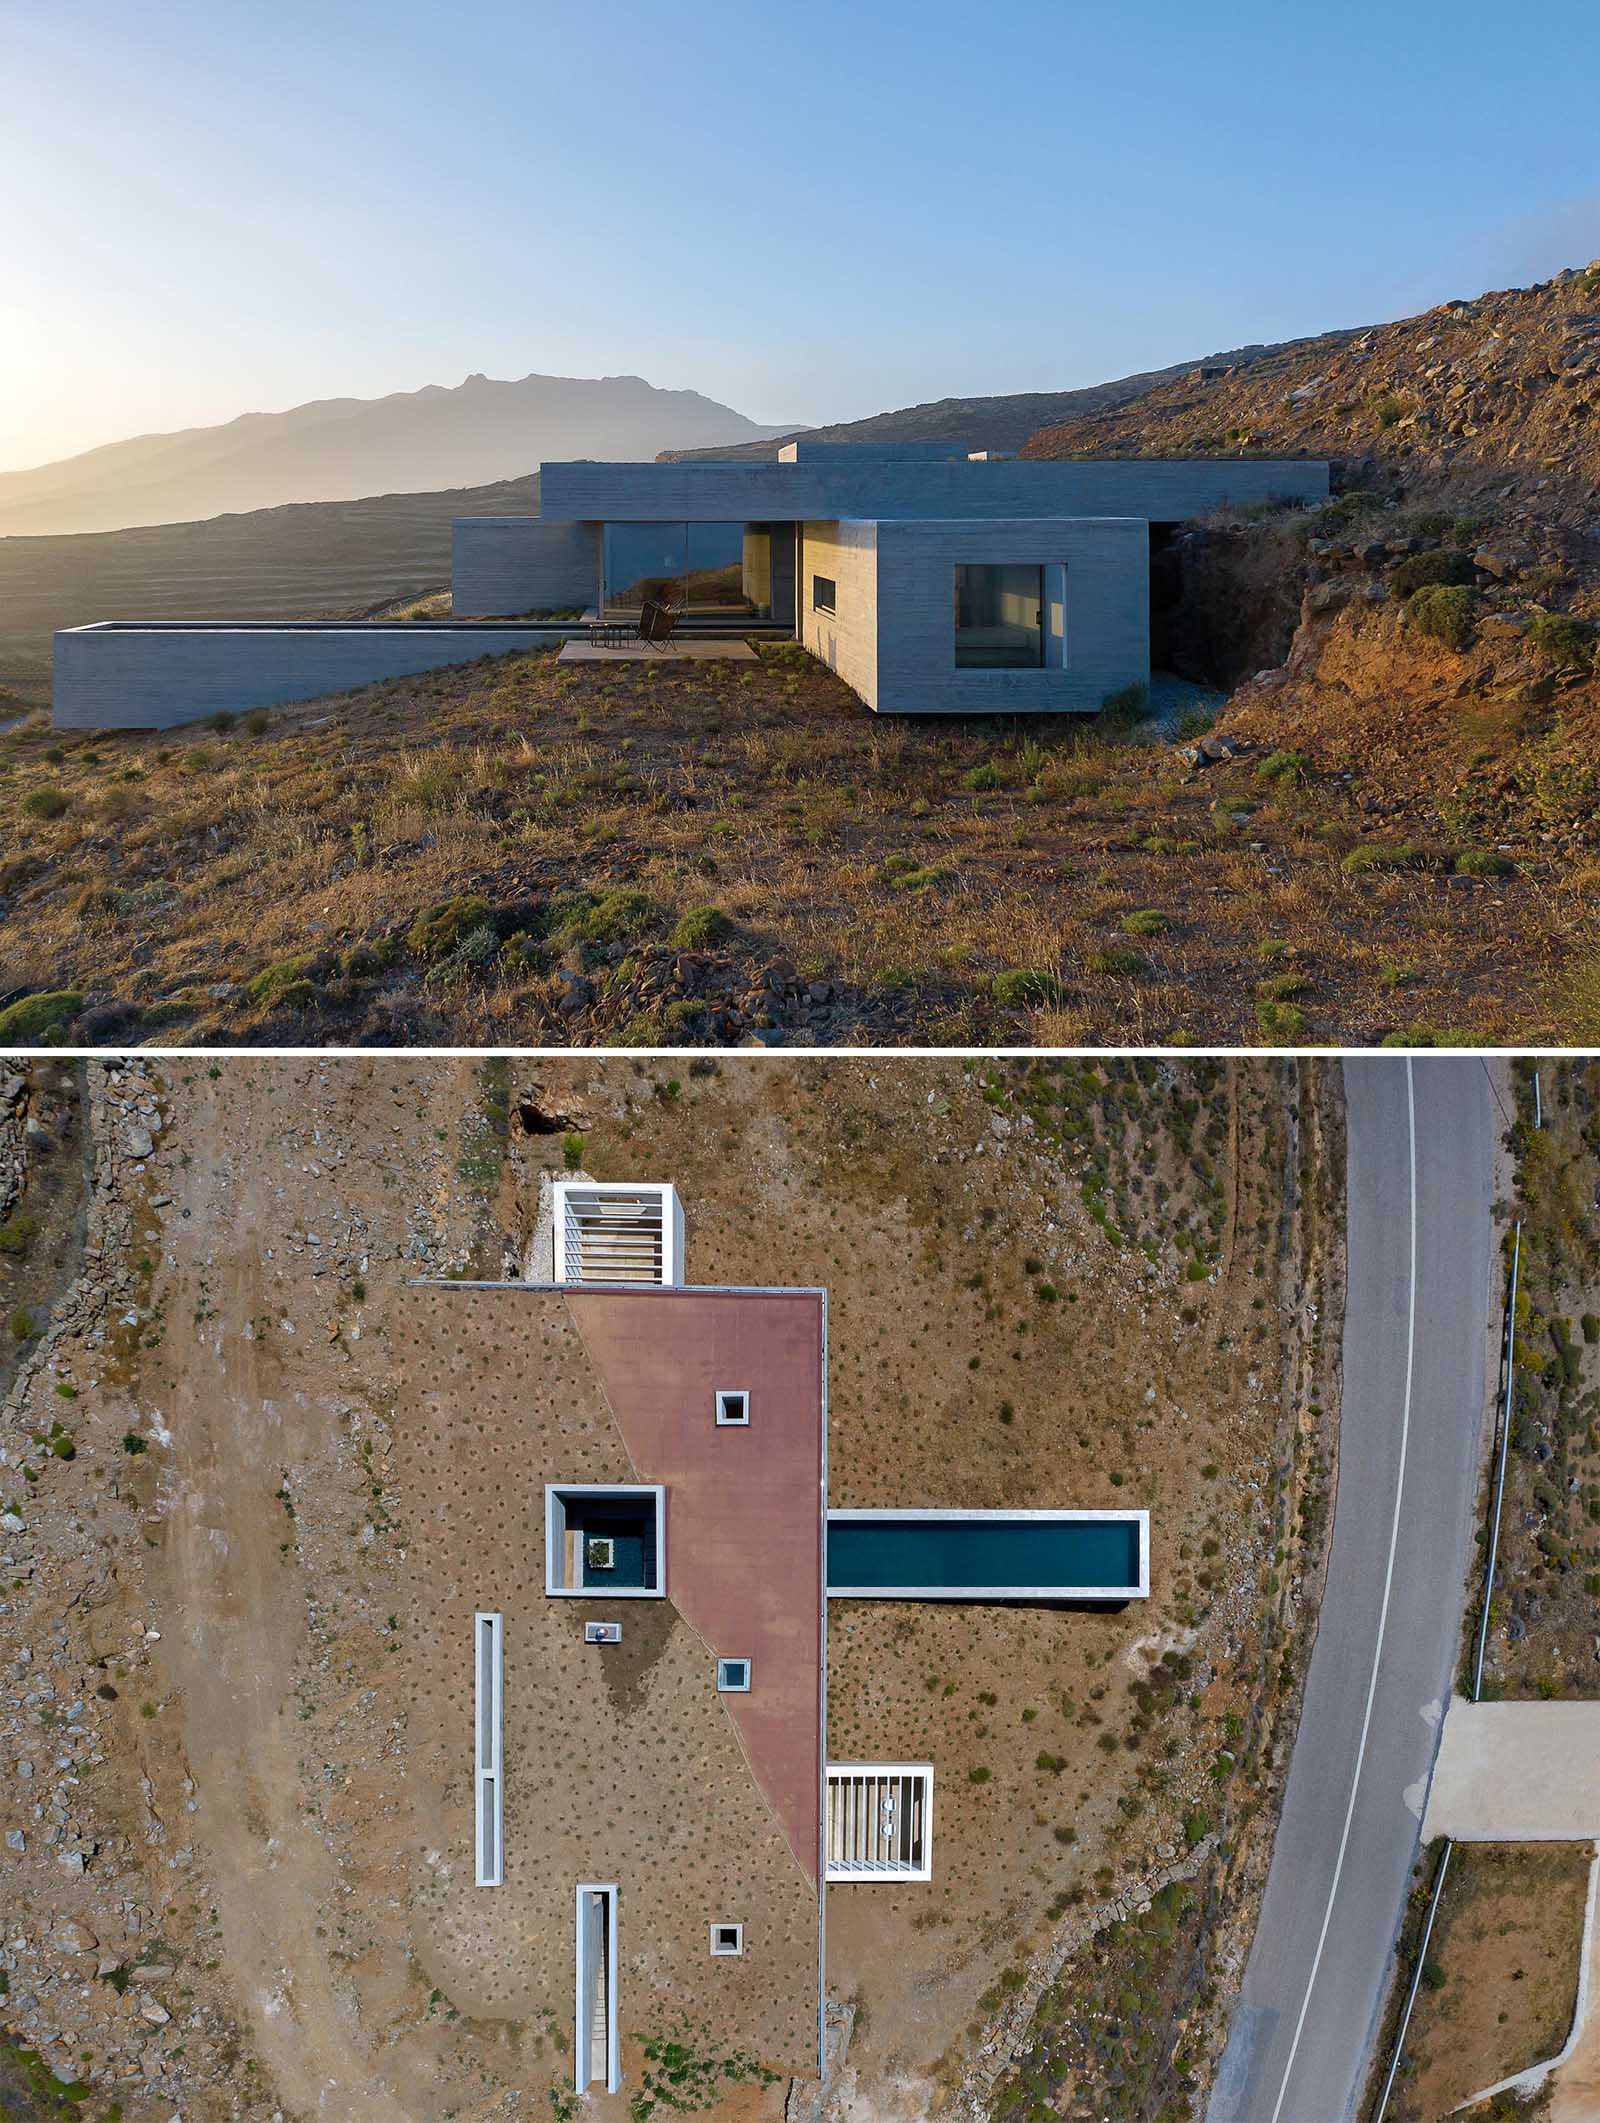 Emerging from the natural landscape as a man-made cave, this modern concrete home has been designed to somewhat blend in with its surroundings, with the partial green roof acting as a continuation of the hillside.